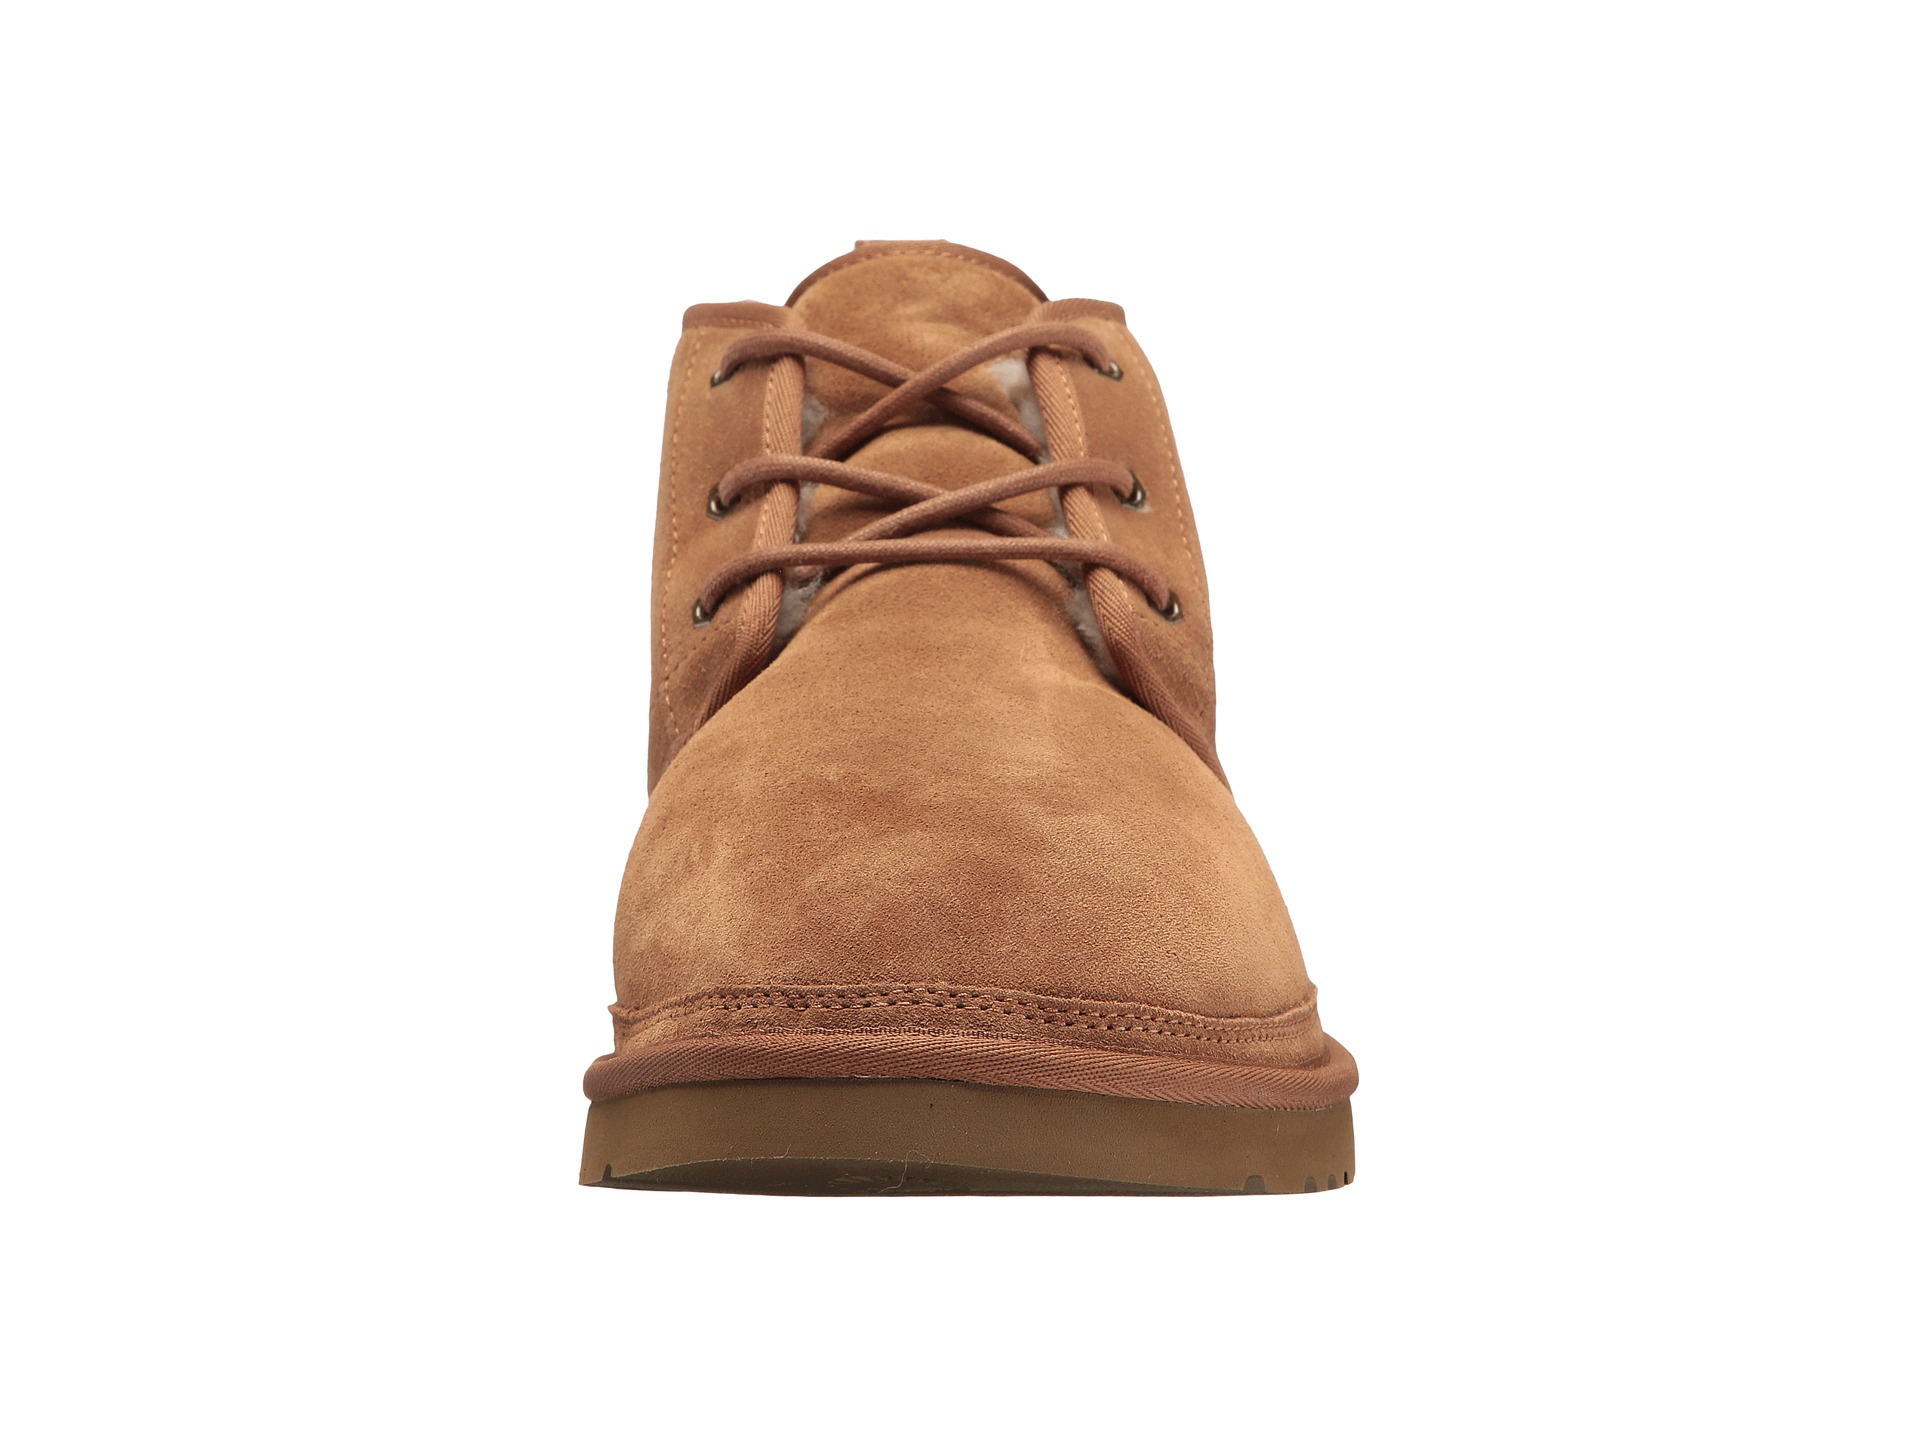 7a87bb7fa80 Neumel Ugg Boots Size 8 - cheap watches mgc-gas.com